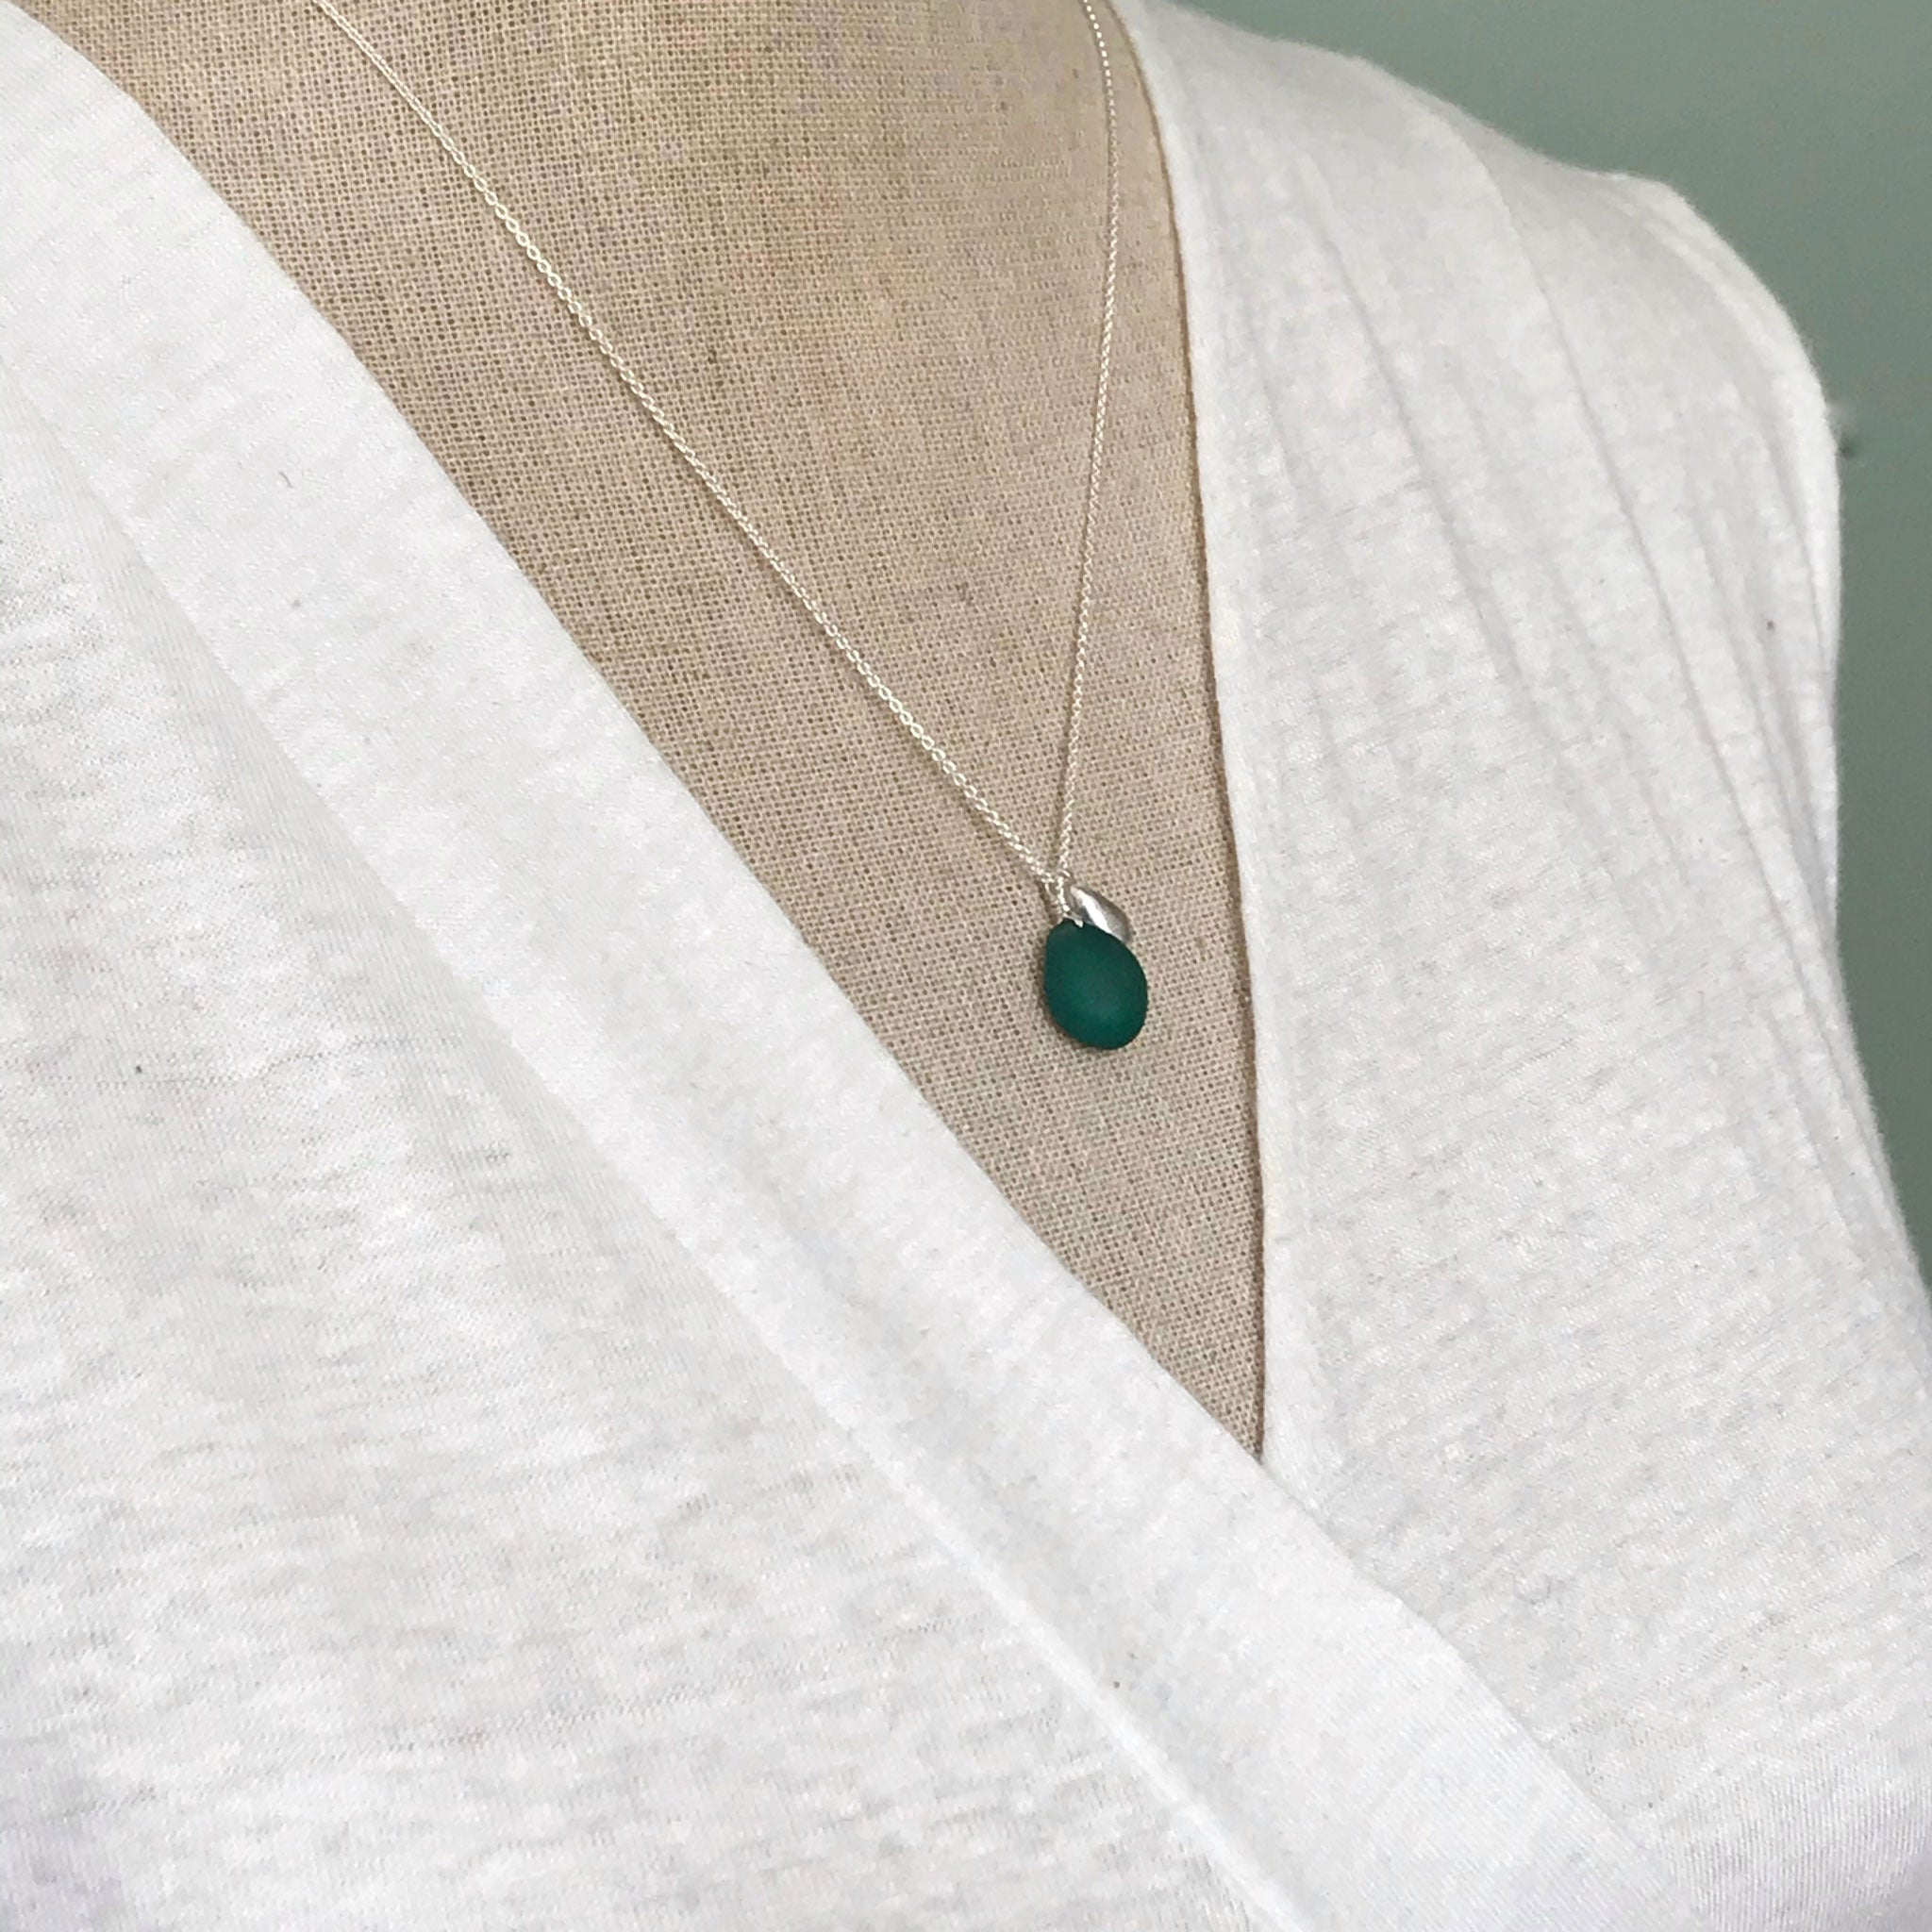 teal seaglass necklace on sterling silver chain with solid silver teardrop charm Kriket Broadhurst jewellery Australian Made